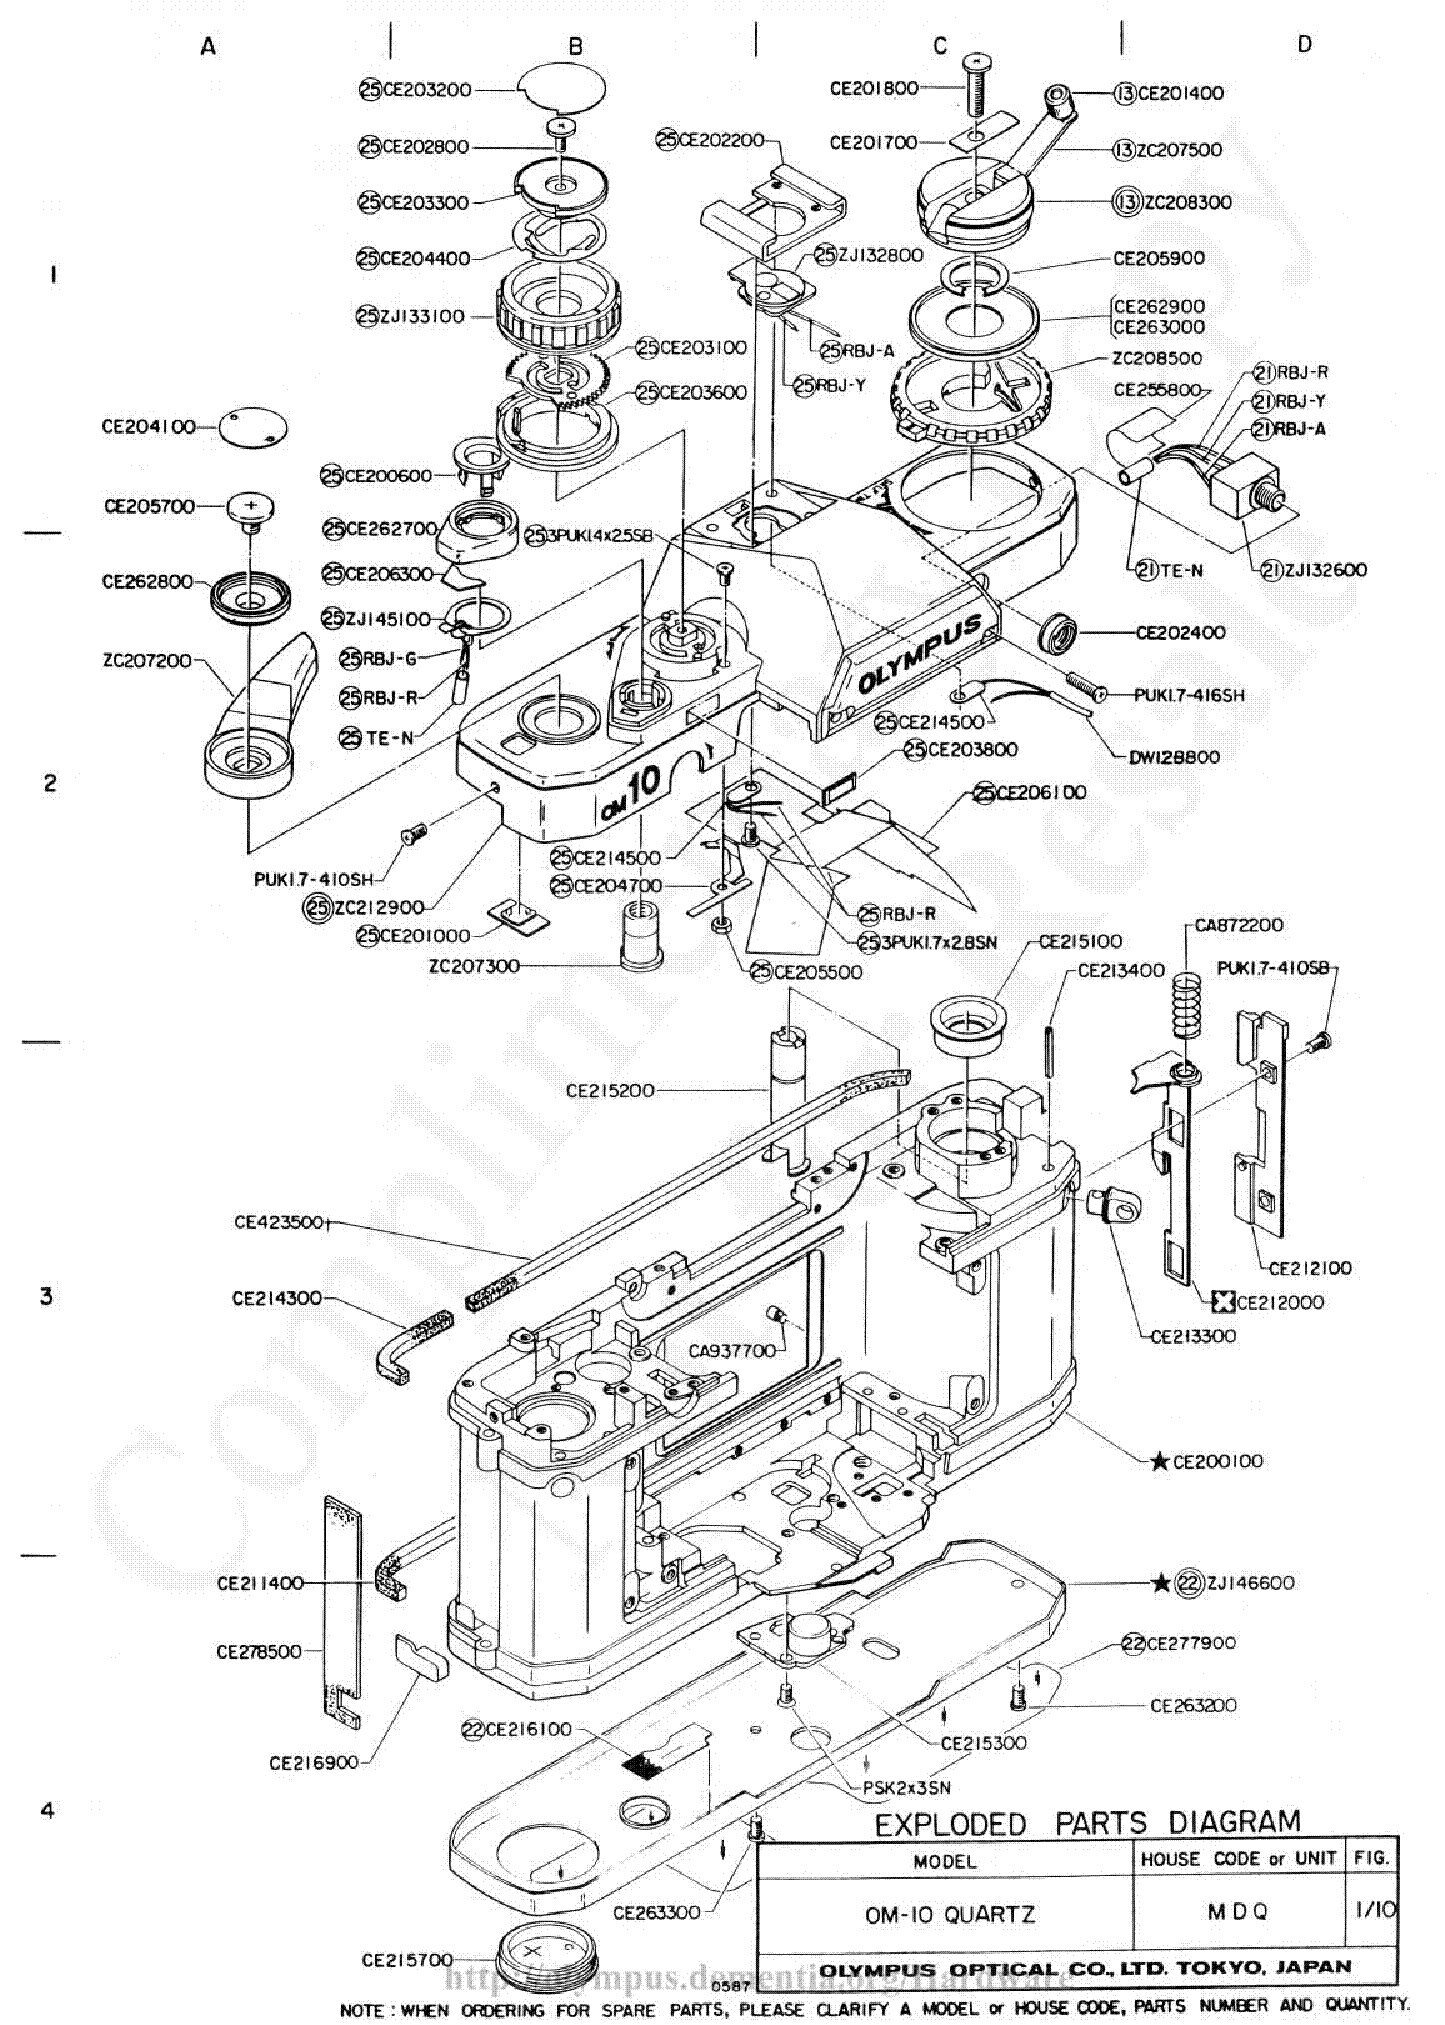 OLYMPUS OM-10 QUARTZ EXPLODED PARTS DIAGRAM Service Manual